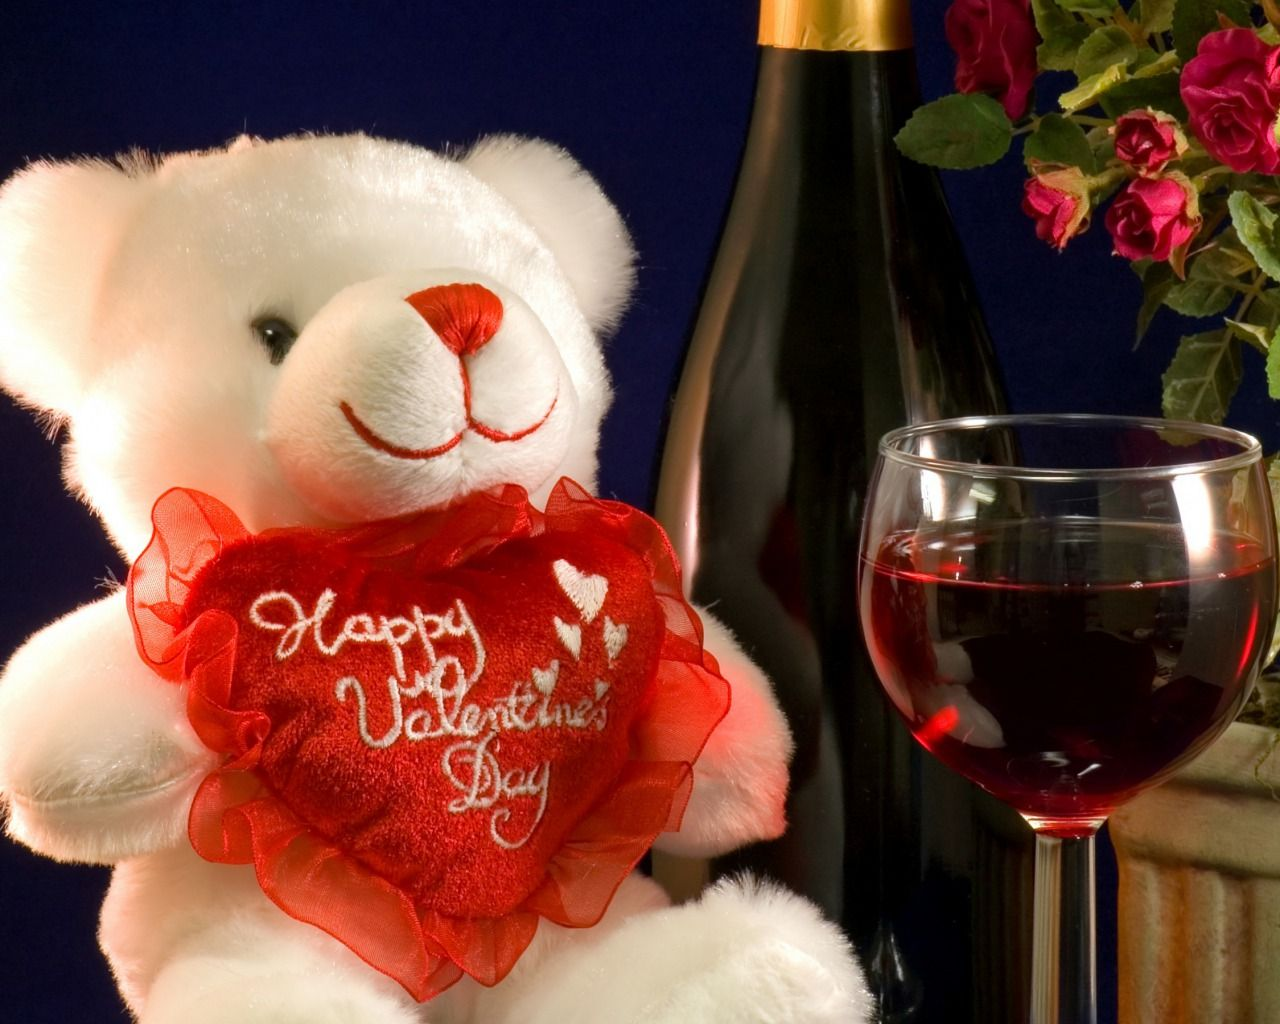 Teddy Bear And Red Wine Happy Wallpaper Valentine Day Wallpaper Hd Valentines Wine